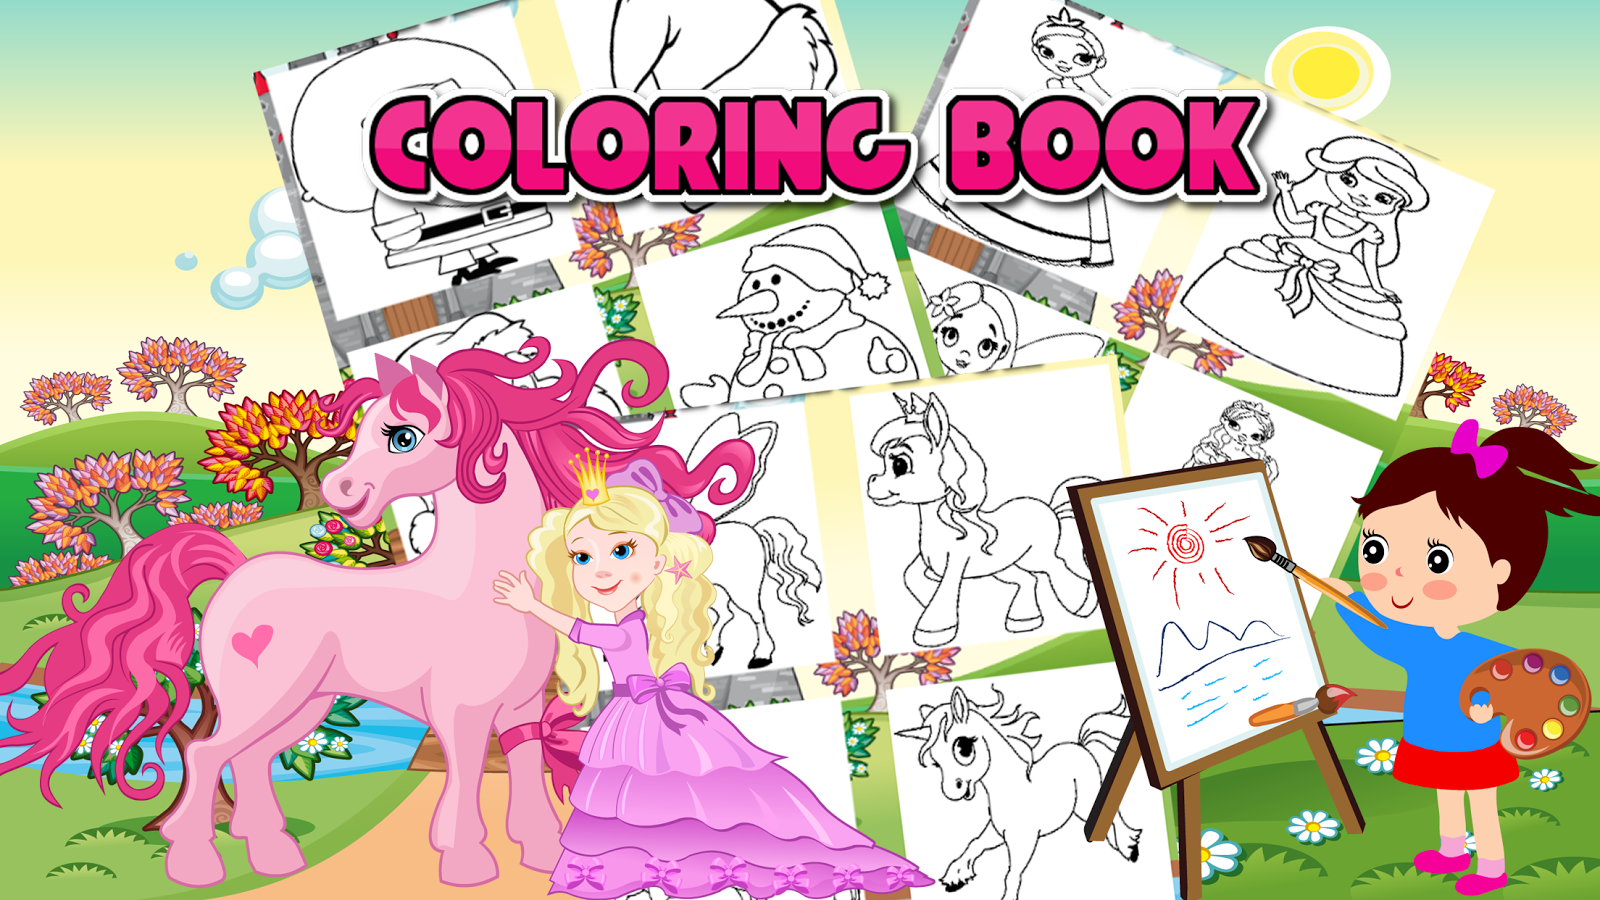 Coloring book for me full - Coloring Book For Me Screenshot